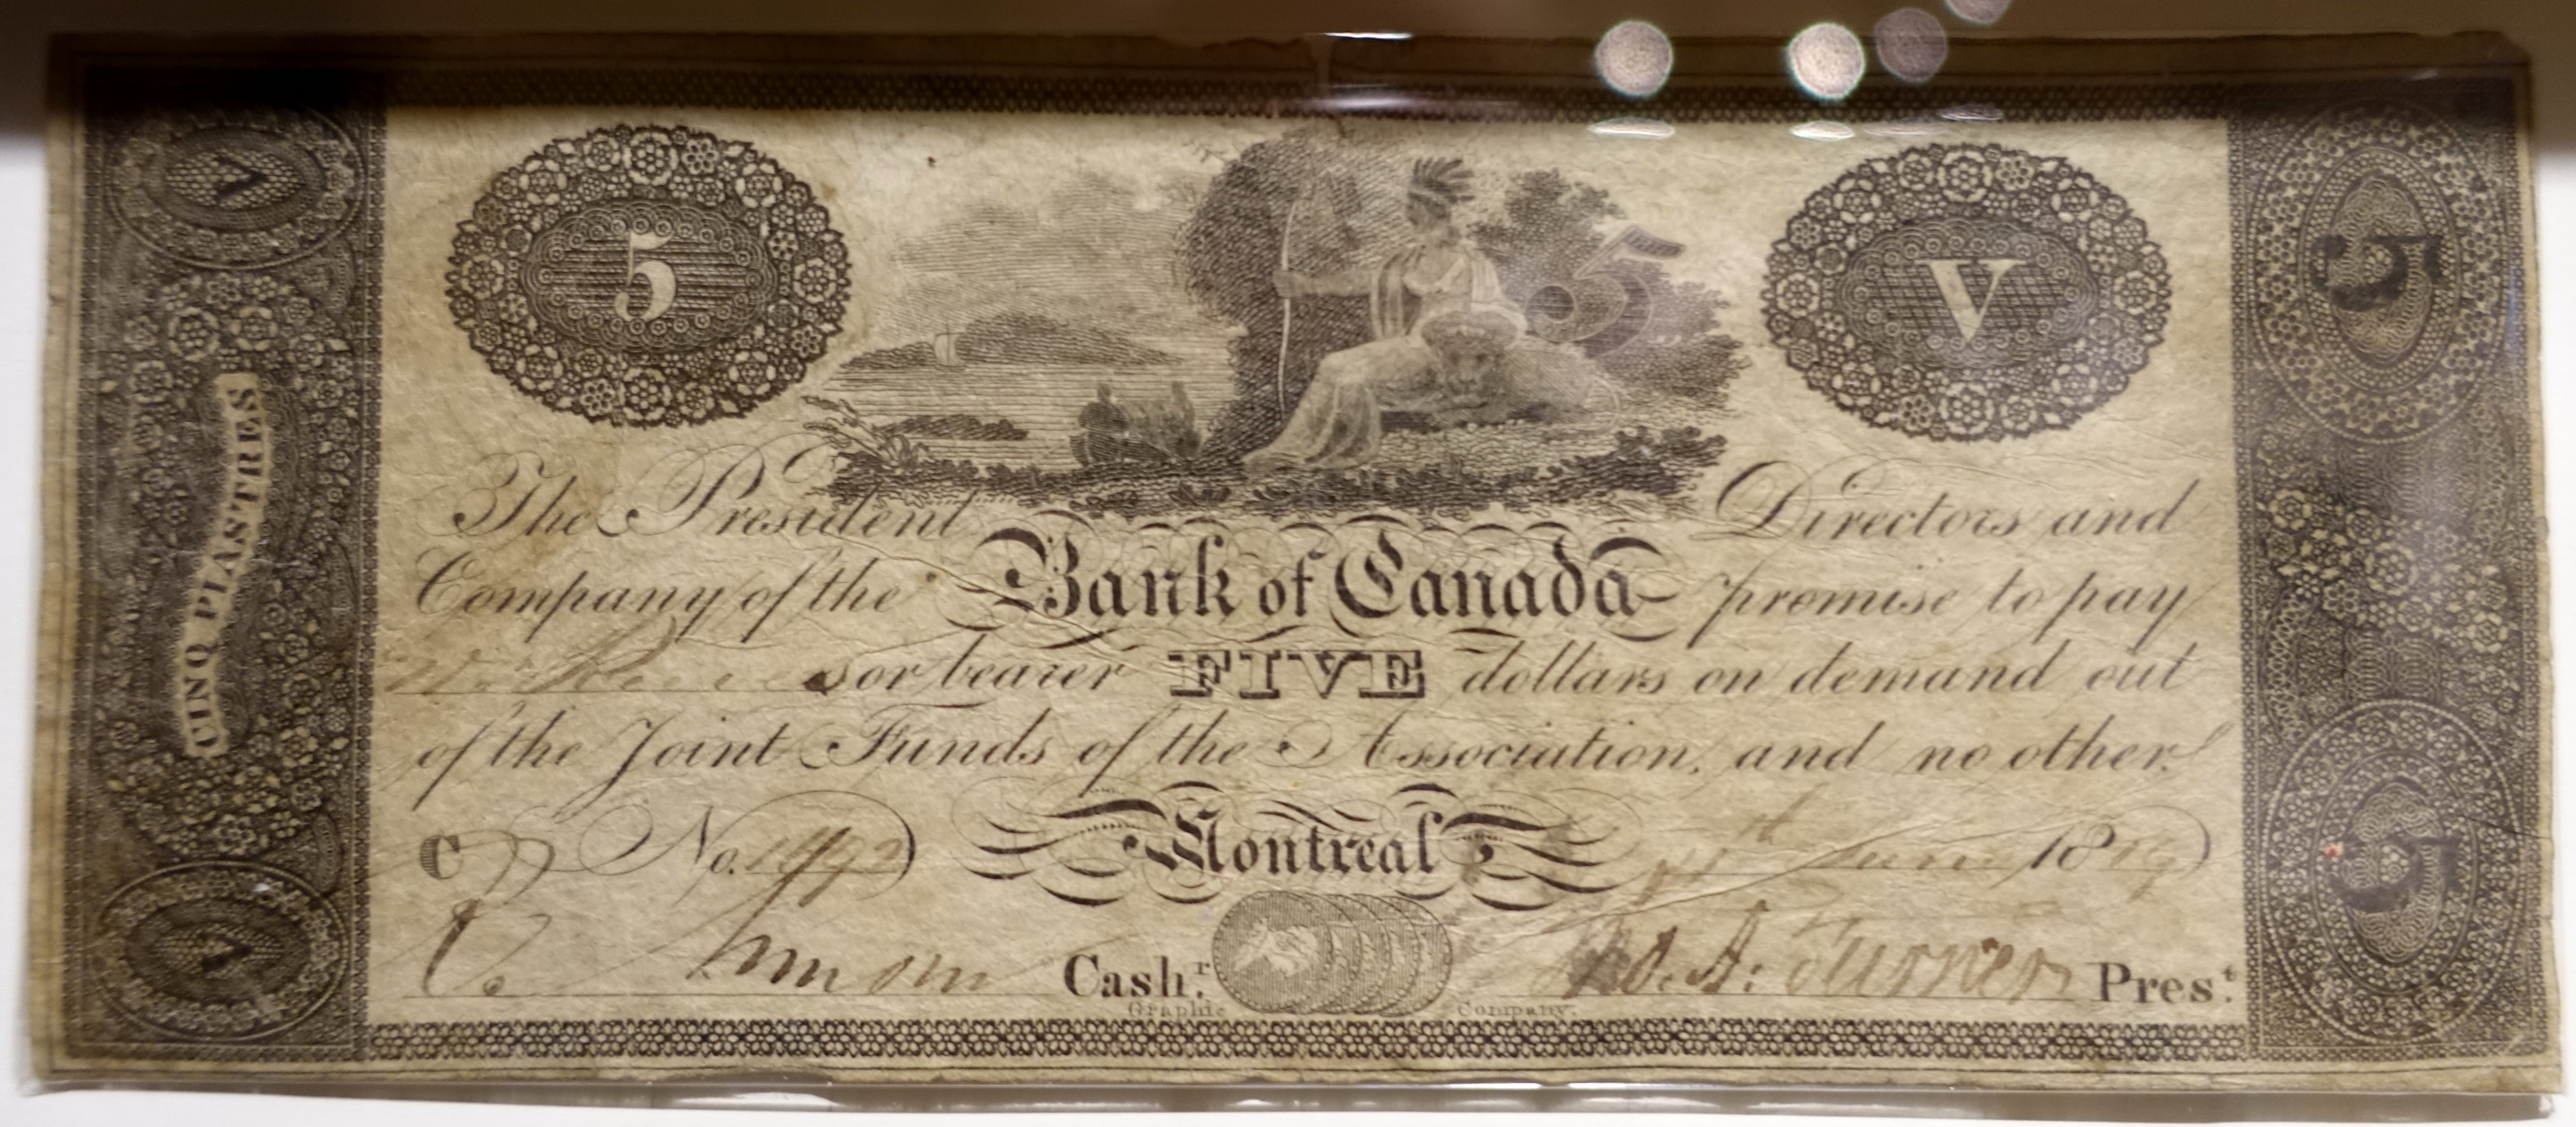 File:5 Dollars, Bank of Canada, 1819 - Bank of Montréal Museum -